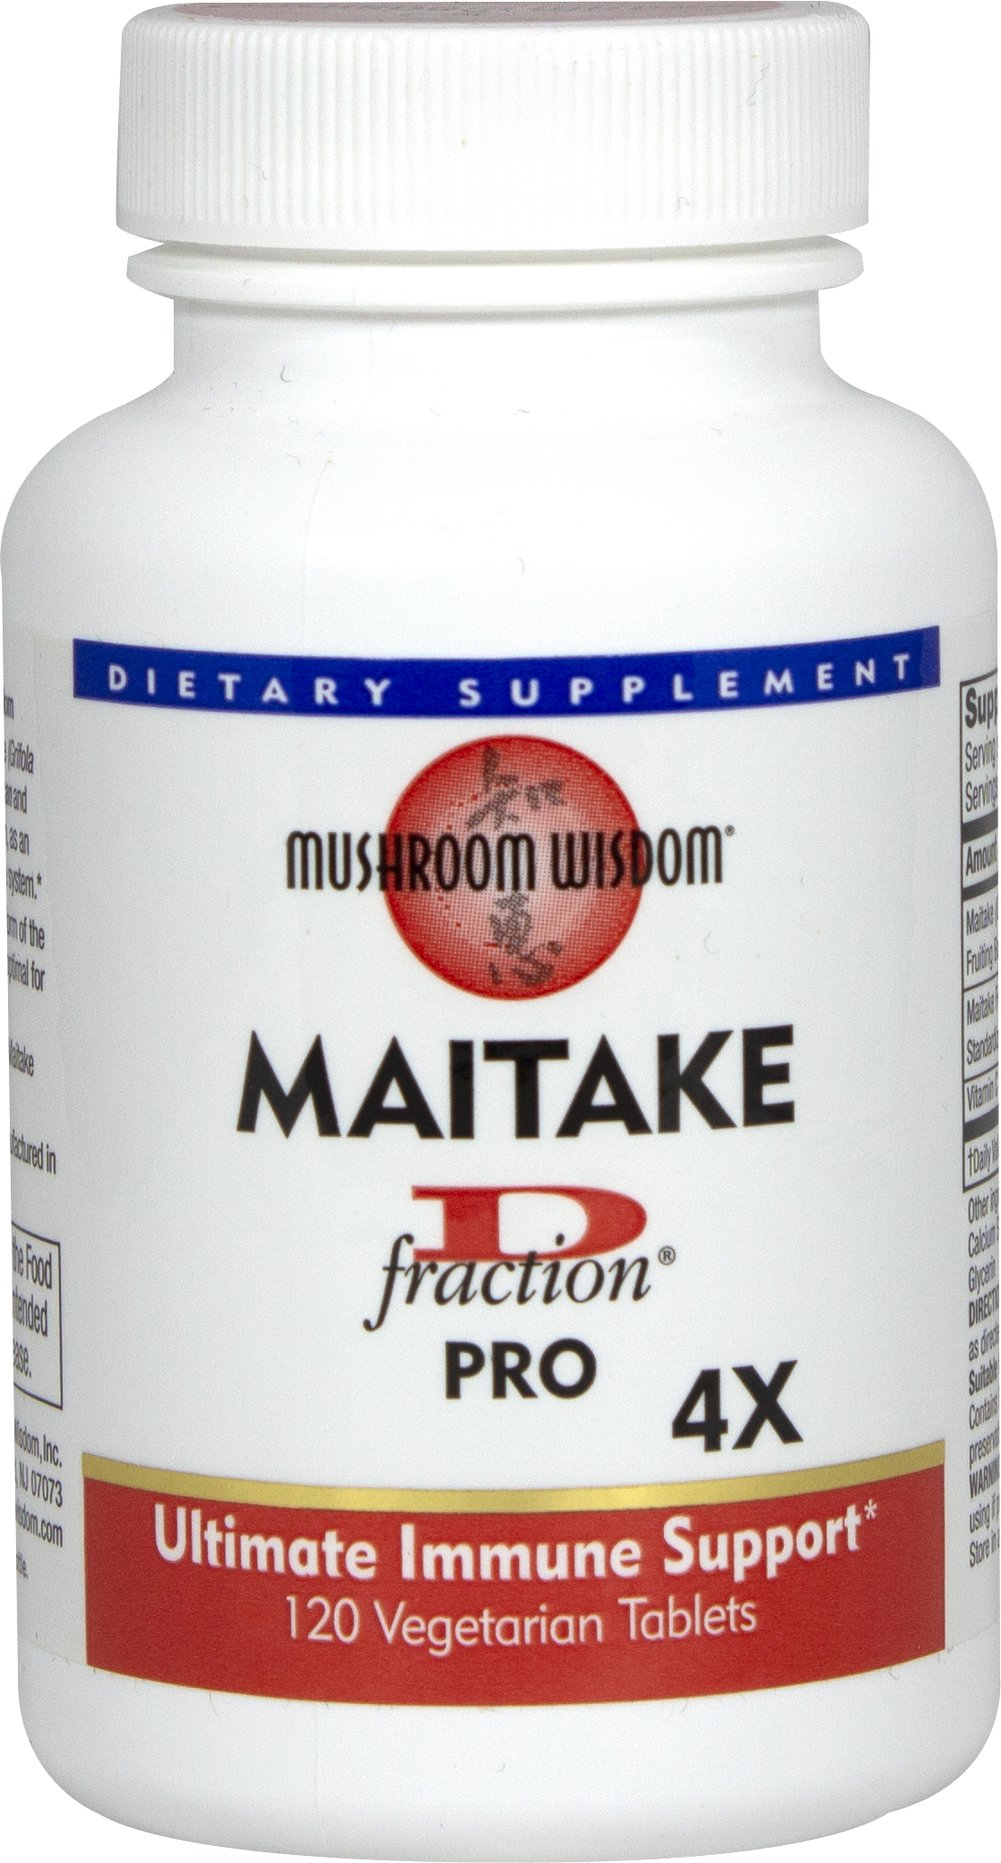 Maitake D-fraction® Pro 4X Thumbnail Alternate Bottle View